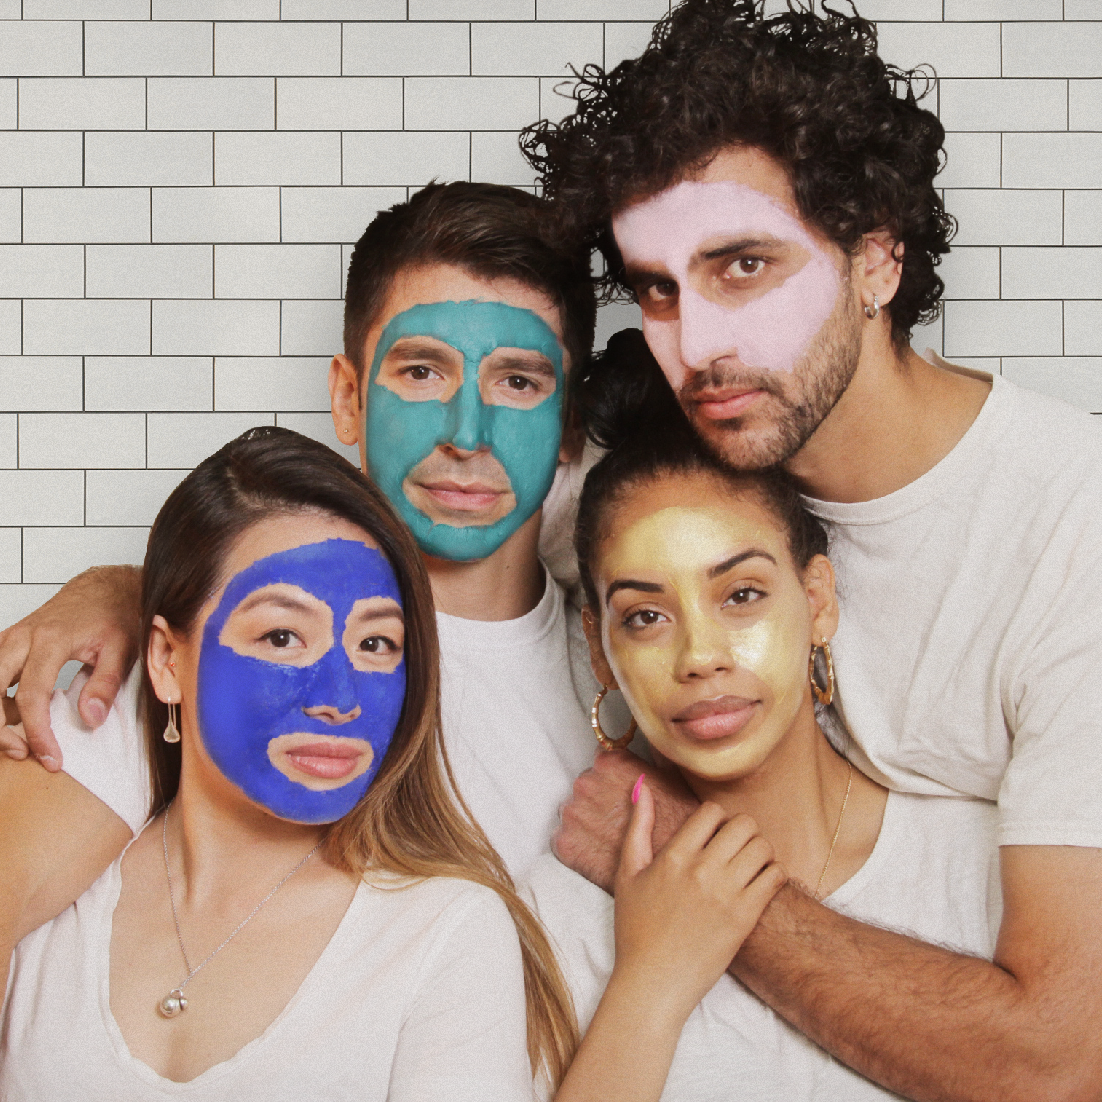 MIXTAPE FACE MASK SET (2 PACK) | Give 2 Mixtapes (Name each one)